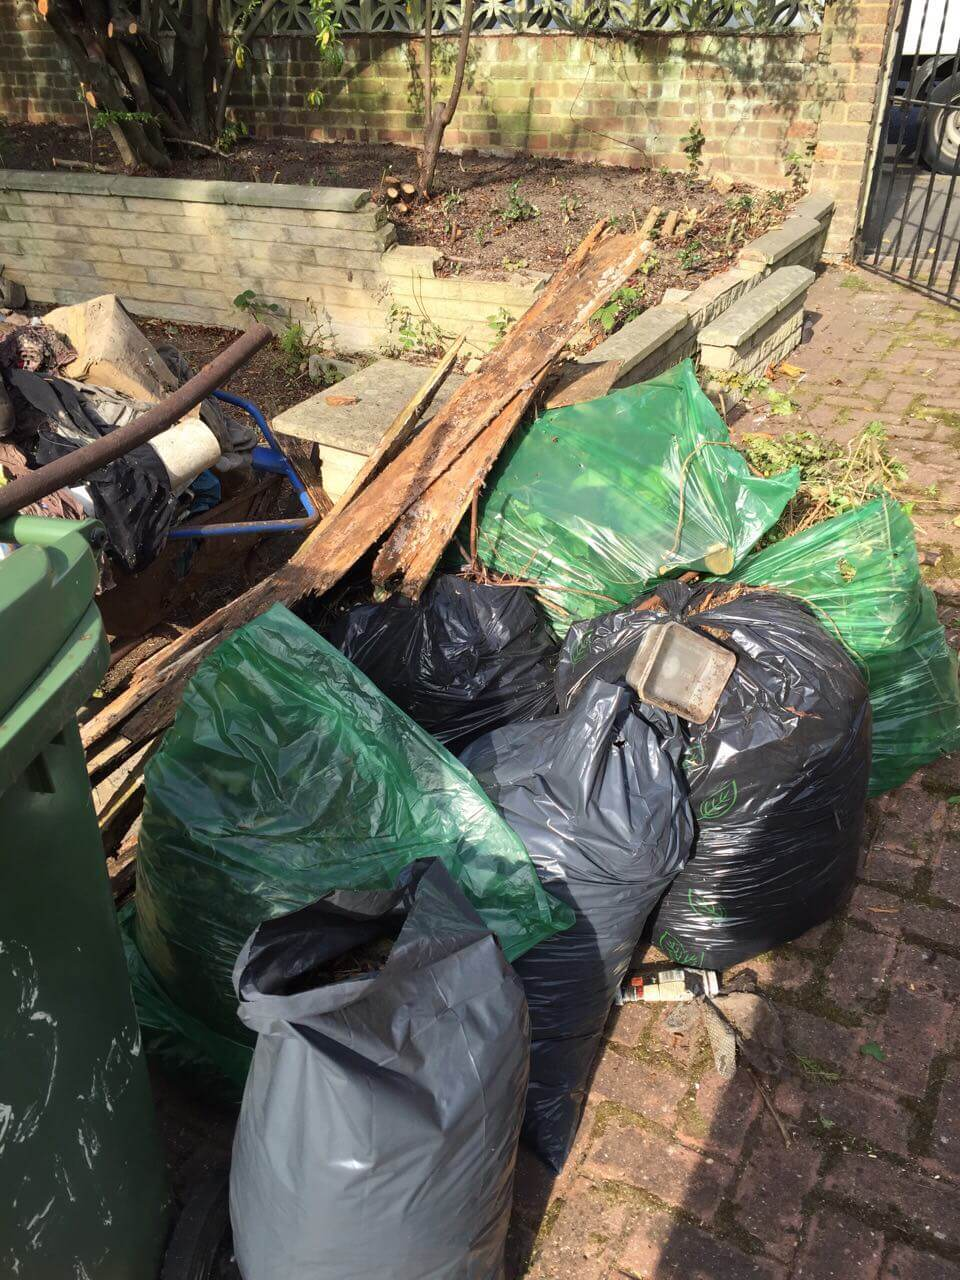 House Junk Disposal Holland Park House Waste Collection